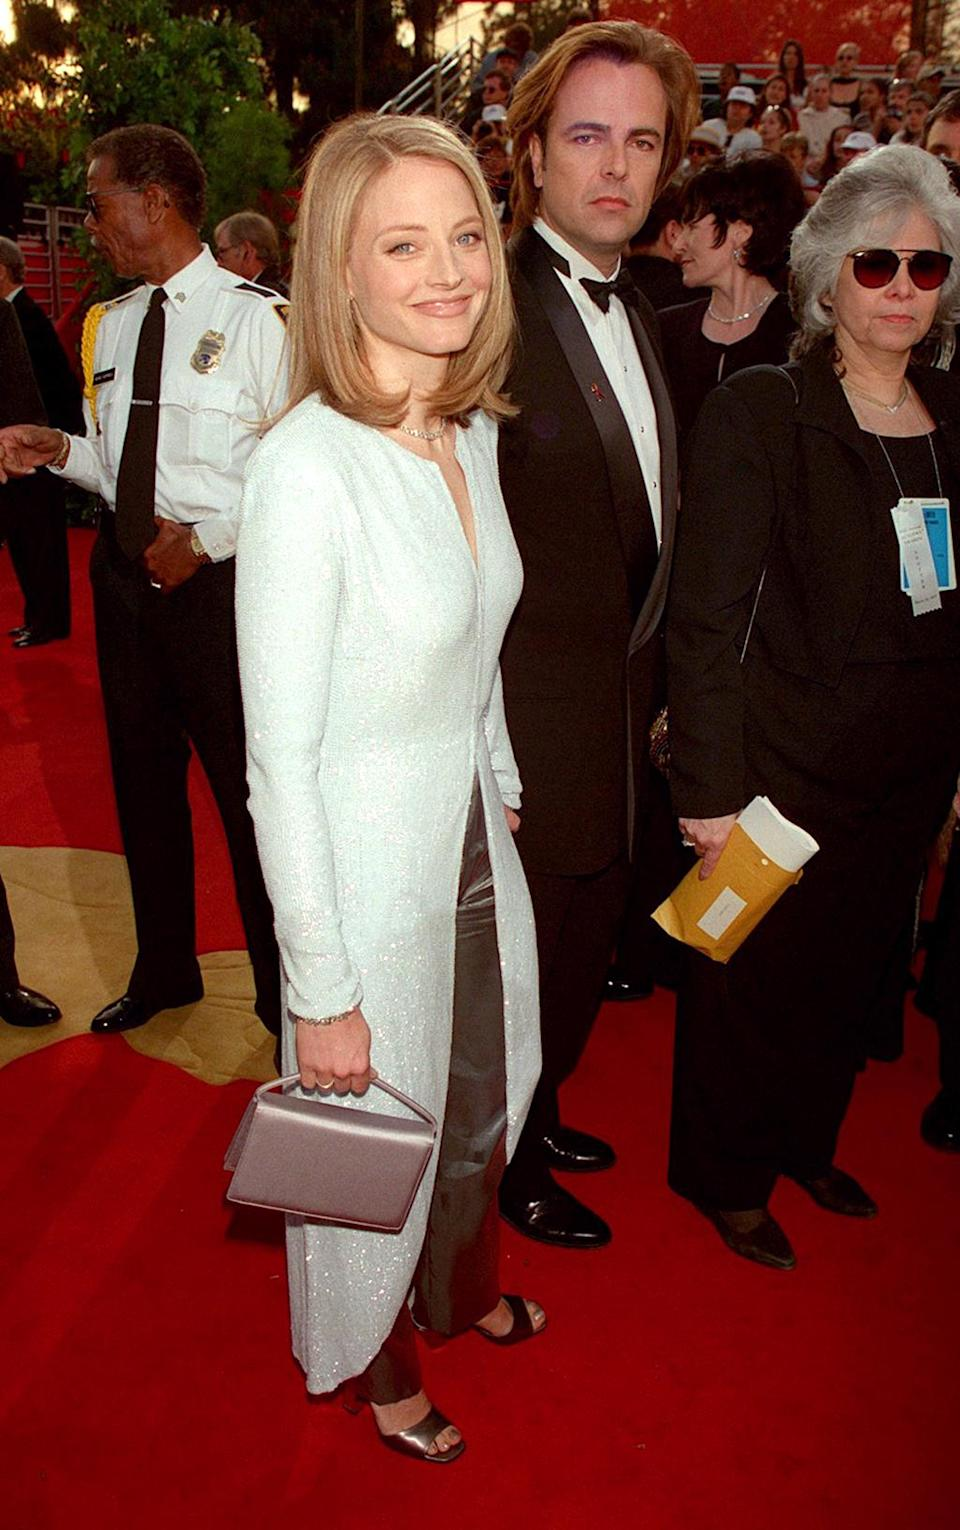 <p>The two-time Oscar winner served as a presenter at the night's award ceremony. (Photo: Frank Trapper/Getty Images) </p>